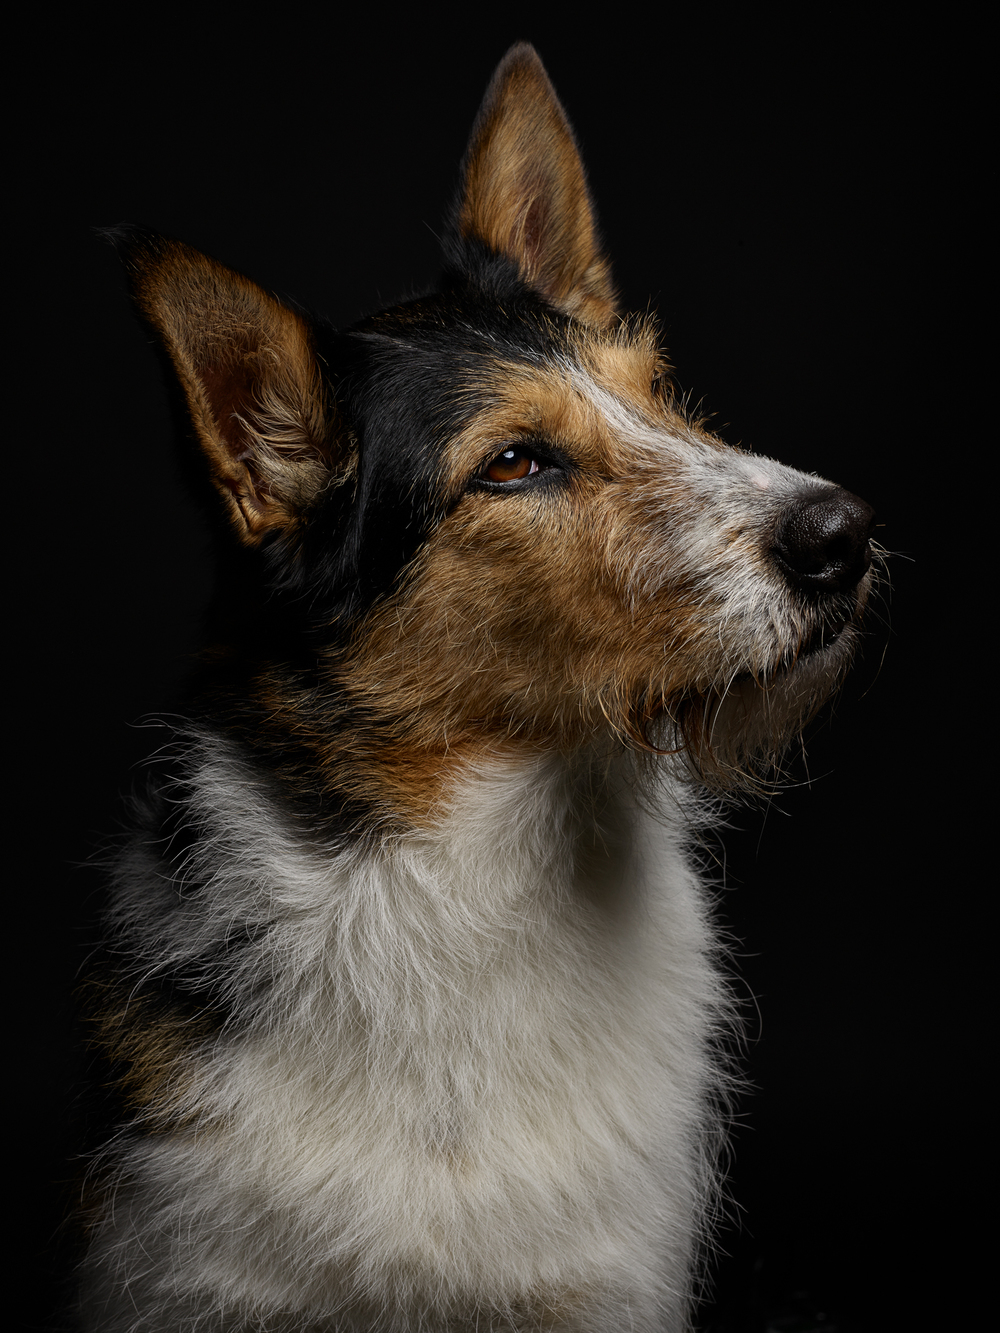 klaus-dyba-dog-photography-